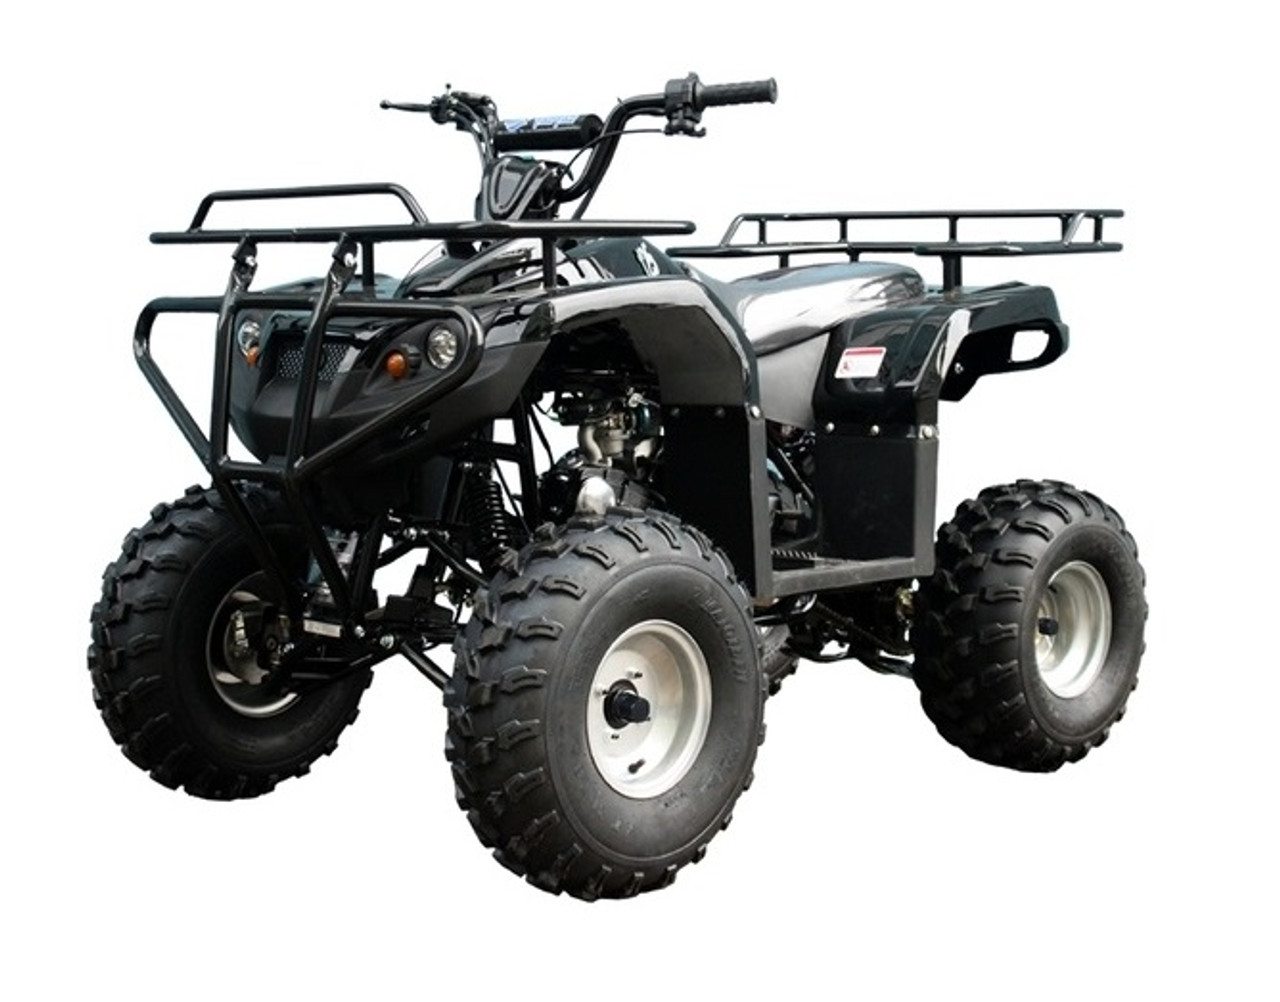 Taotao ATA 125F1, 107CC, Air Cooled, 4-Stroke, 1-Cylinder ATV - Fully Assembled and Tested